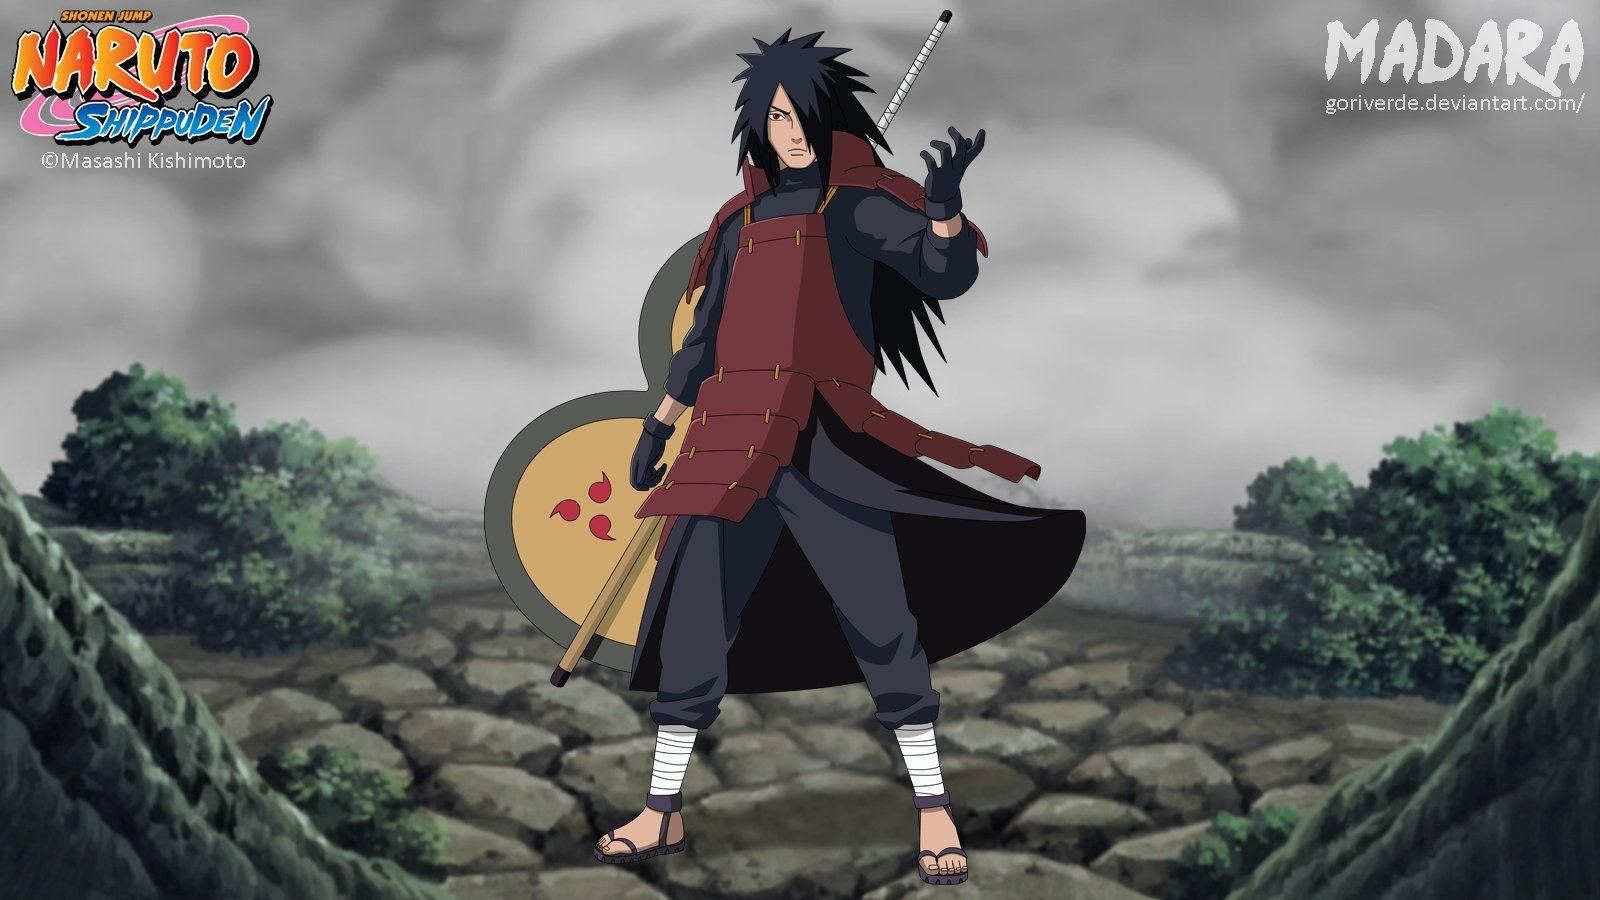 Naruto Shippuden Uchiha Madara HD desktop wallpaper High